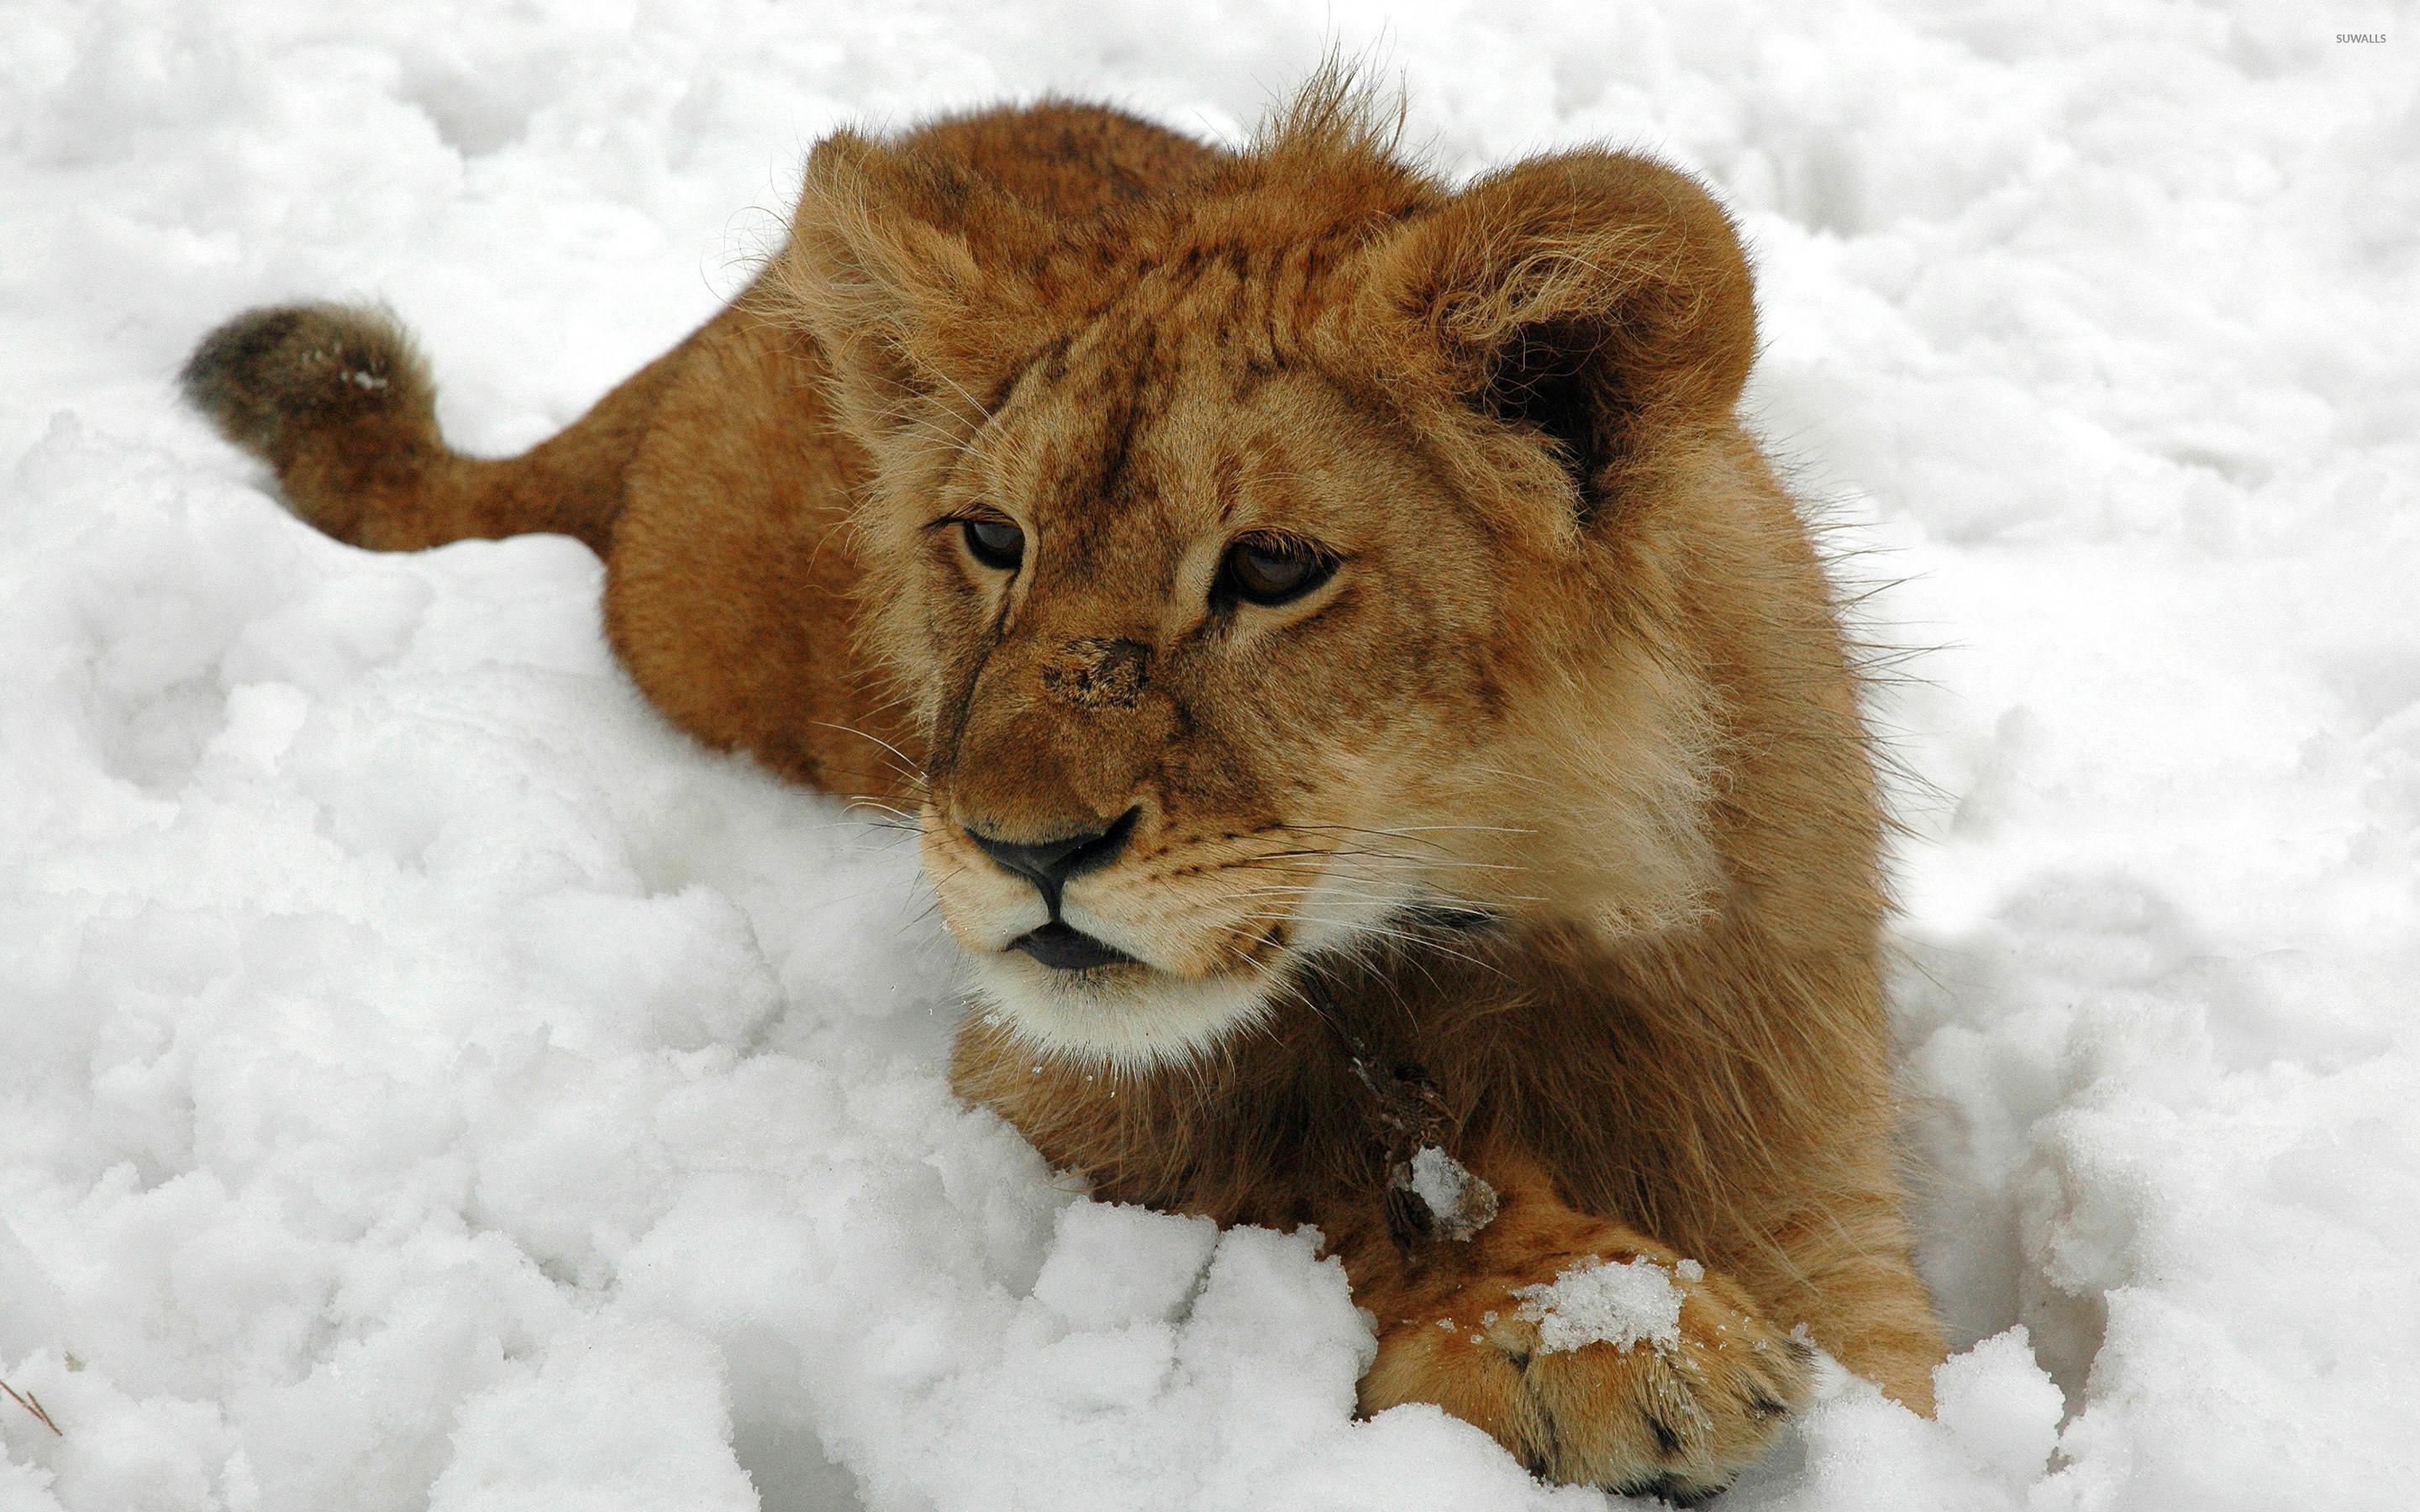 2880x1800 Lion cub in the snow wallpaper